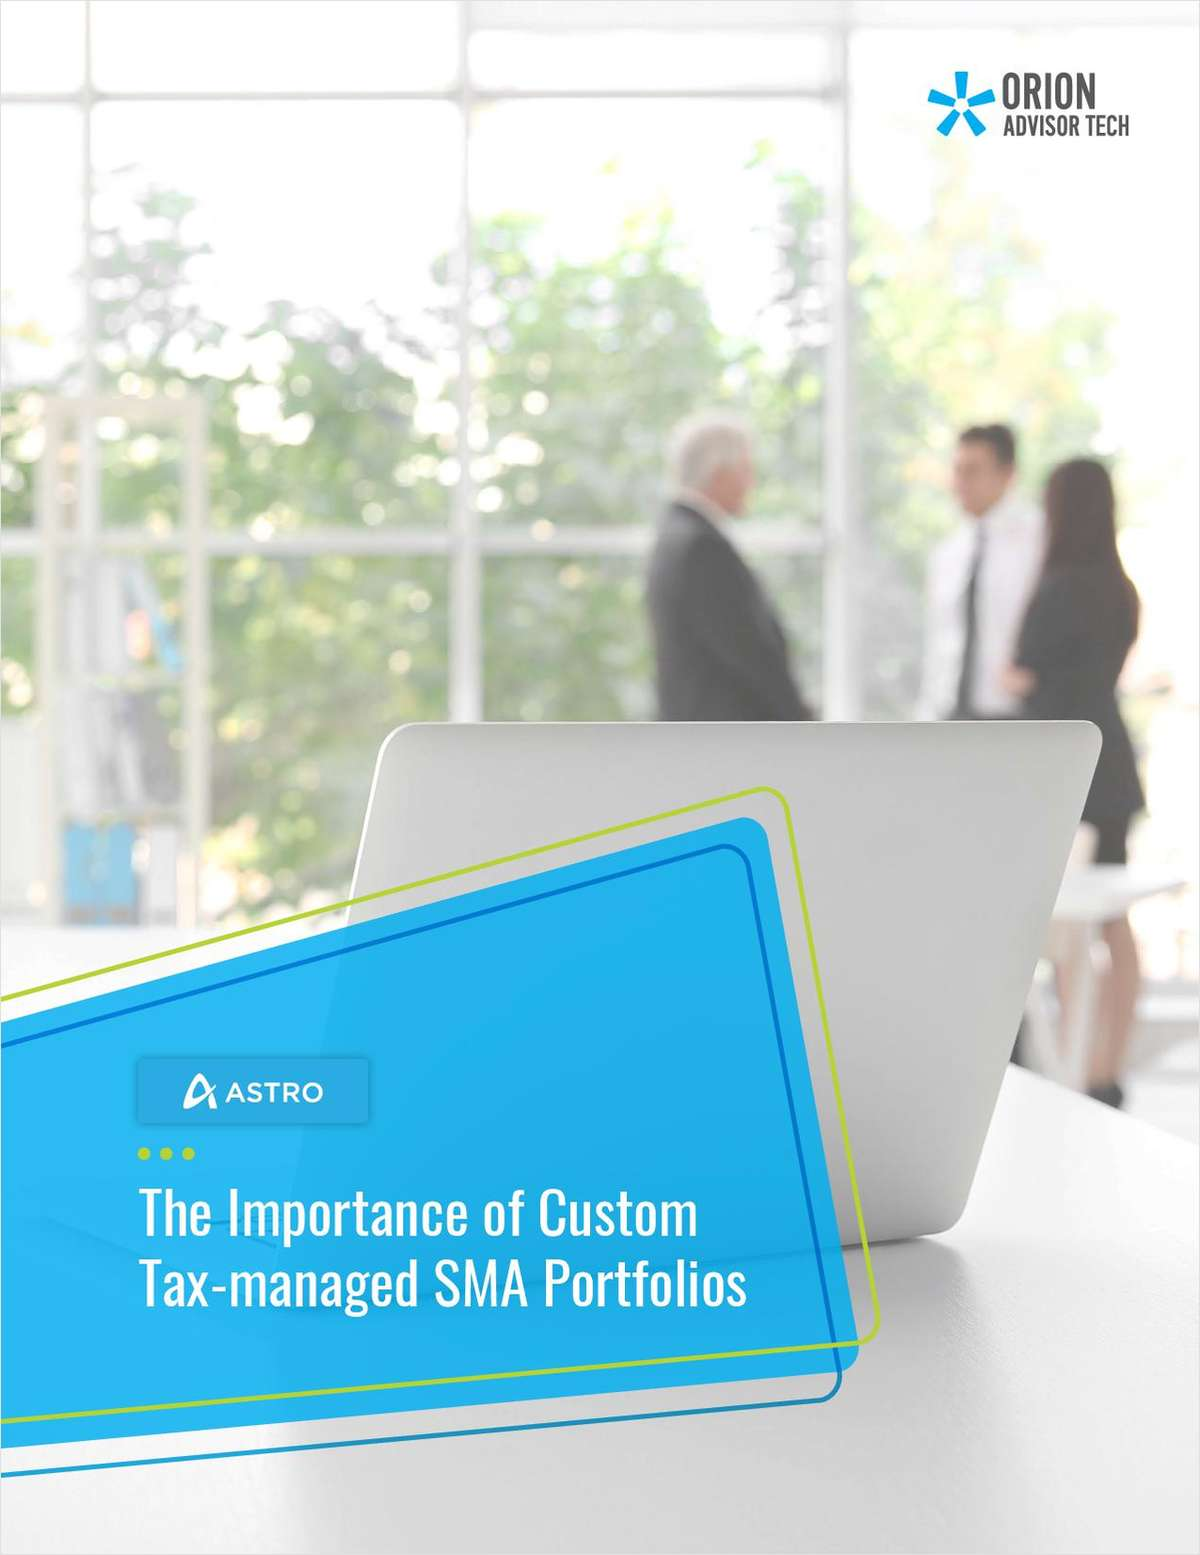 Stand Out with Tax-Managed SMA Portfolios